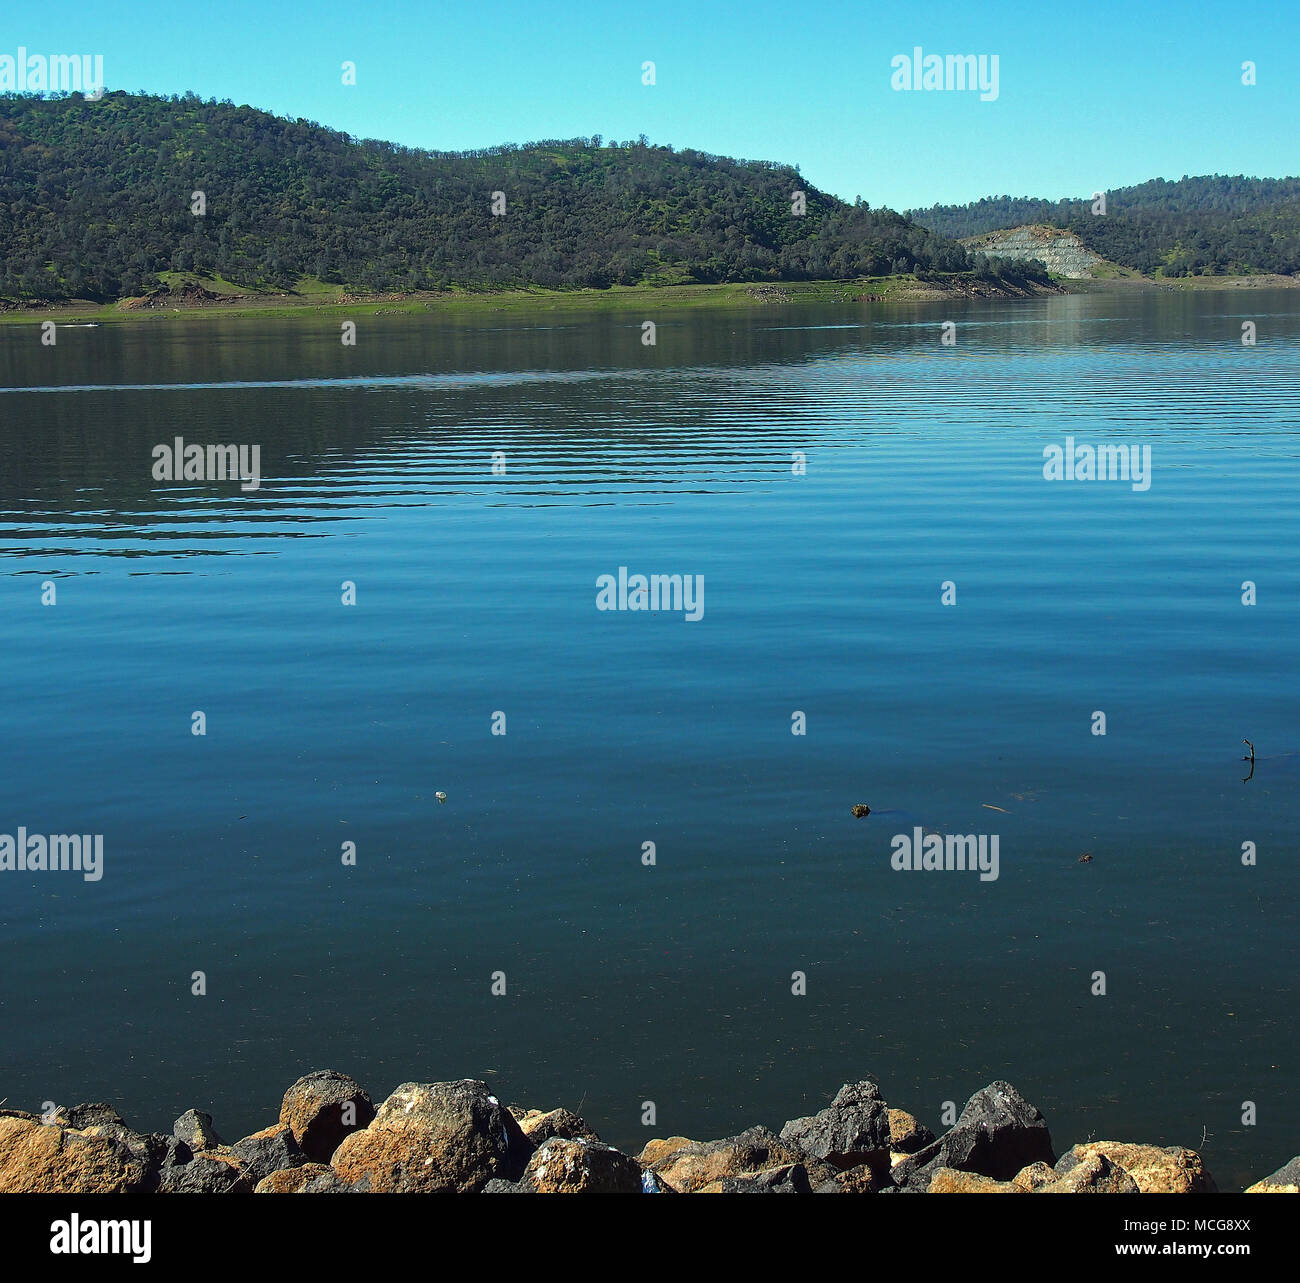 New Melones Lake, Sierra Nevada Foothills, California - Stock Image